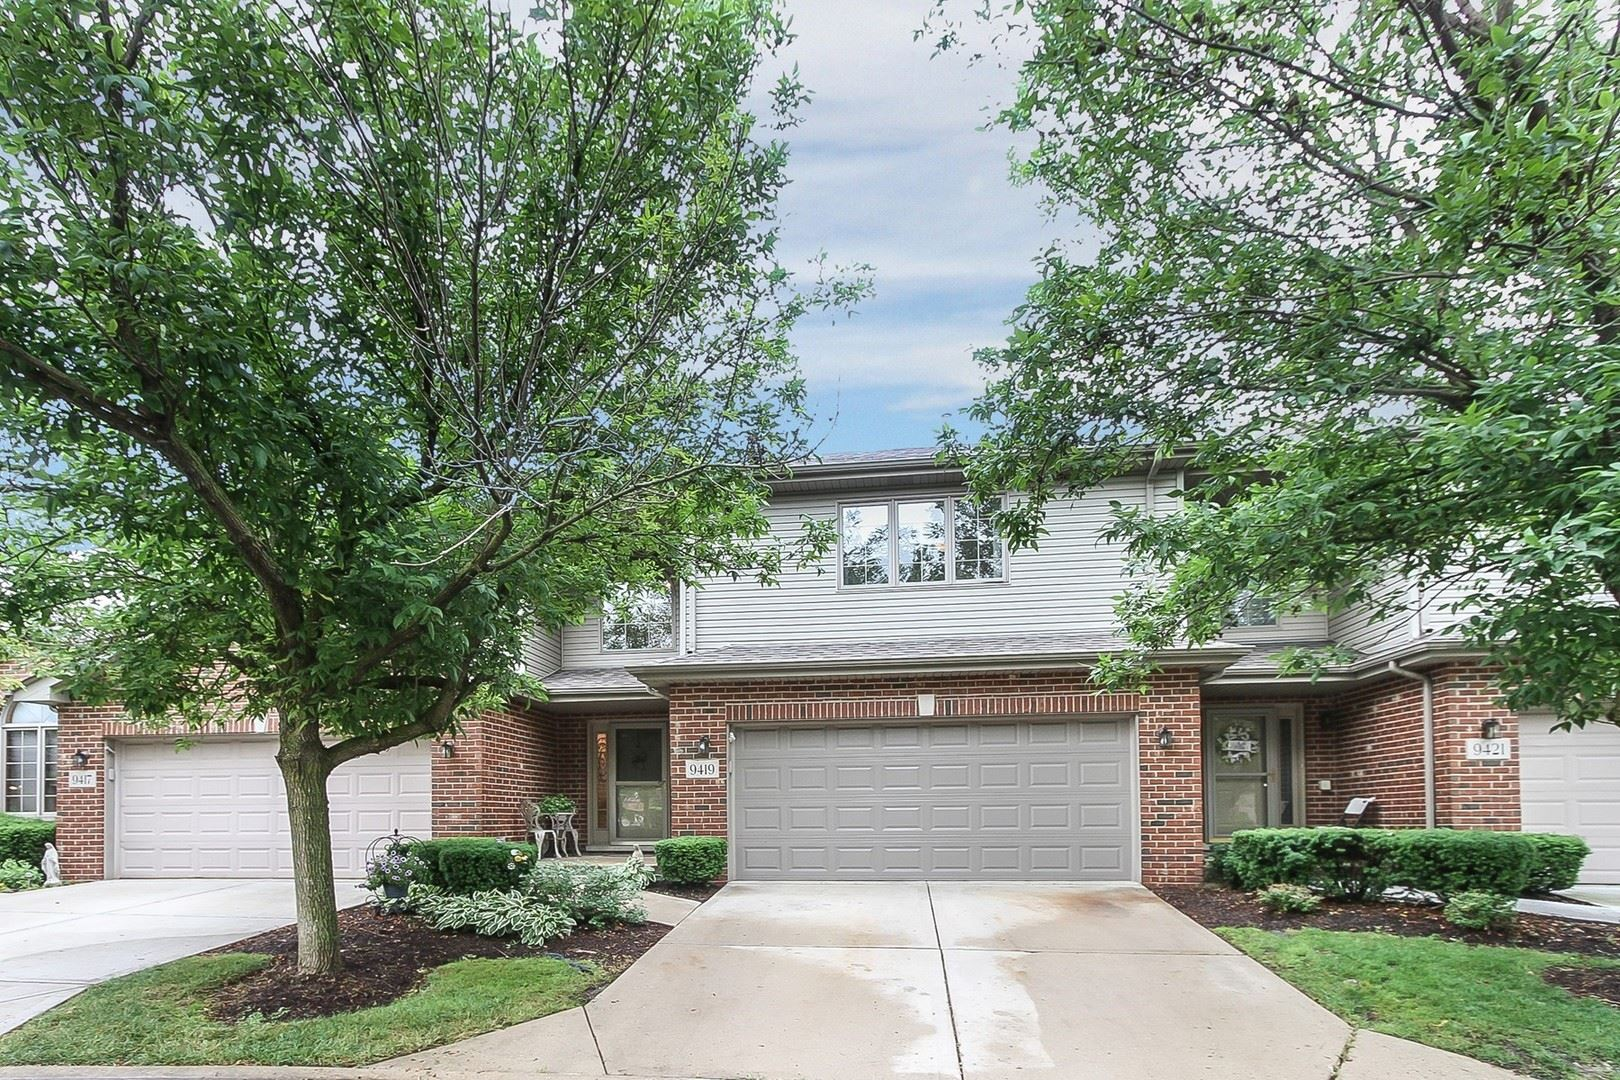 9419 Dundee Place, Tinley Park, IL 60477 - #: 10767369